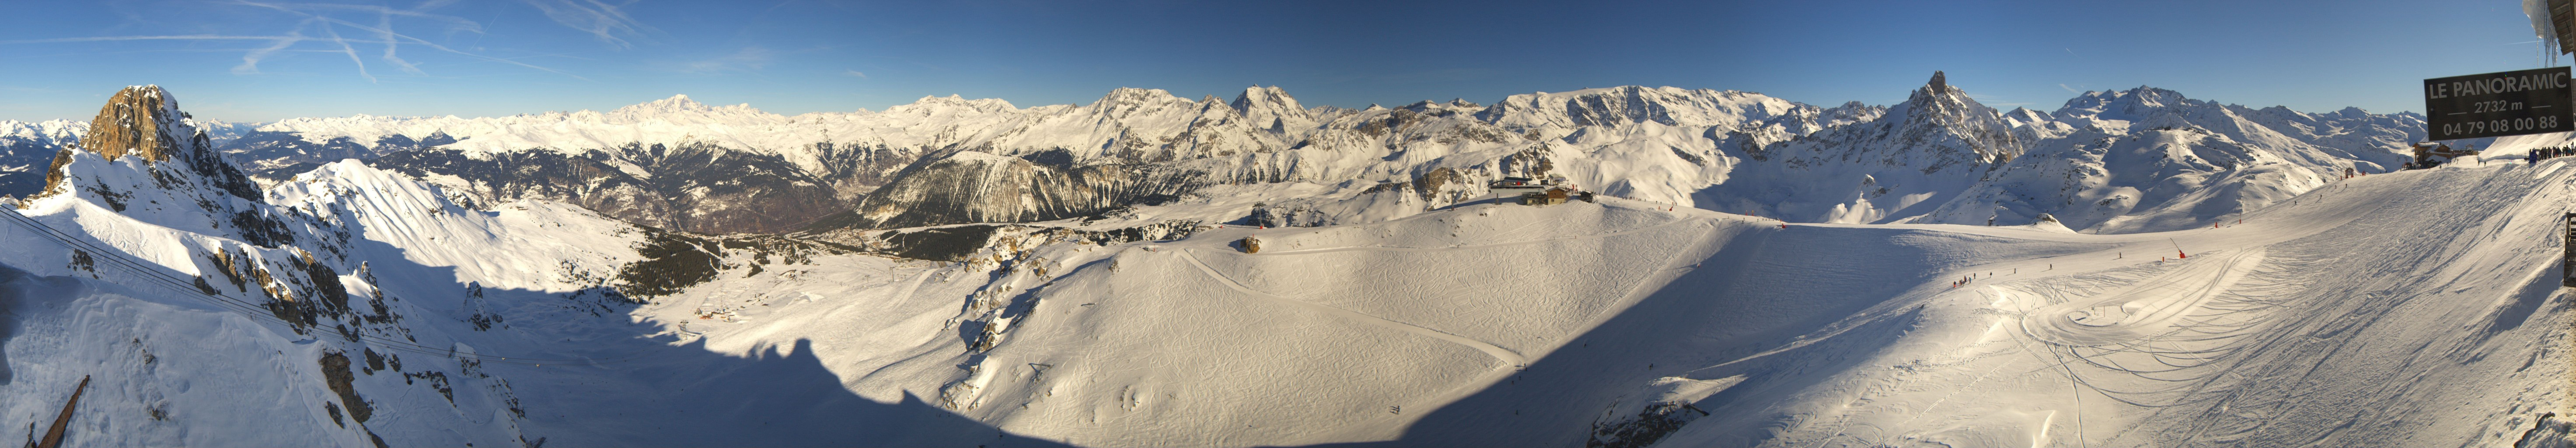 Webcam - Courchevel Saulire -  2700 m